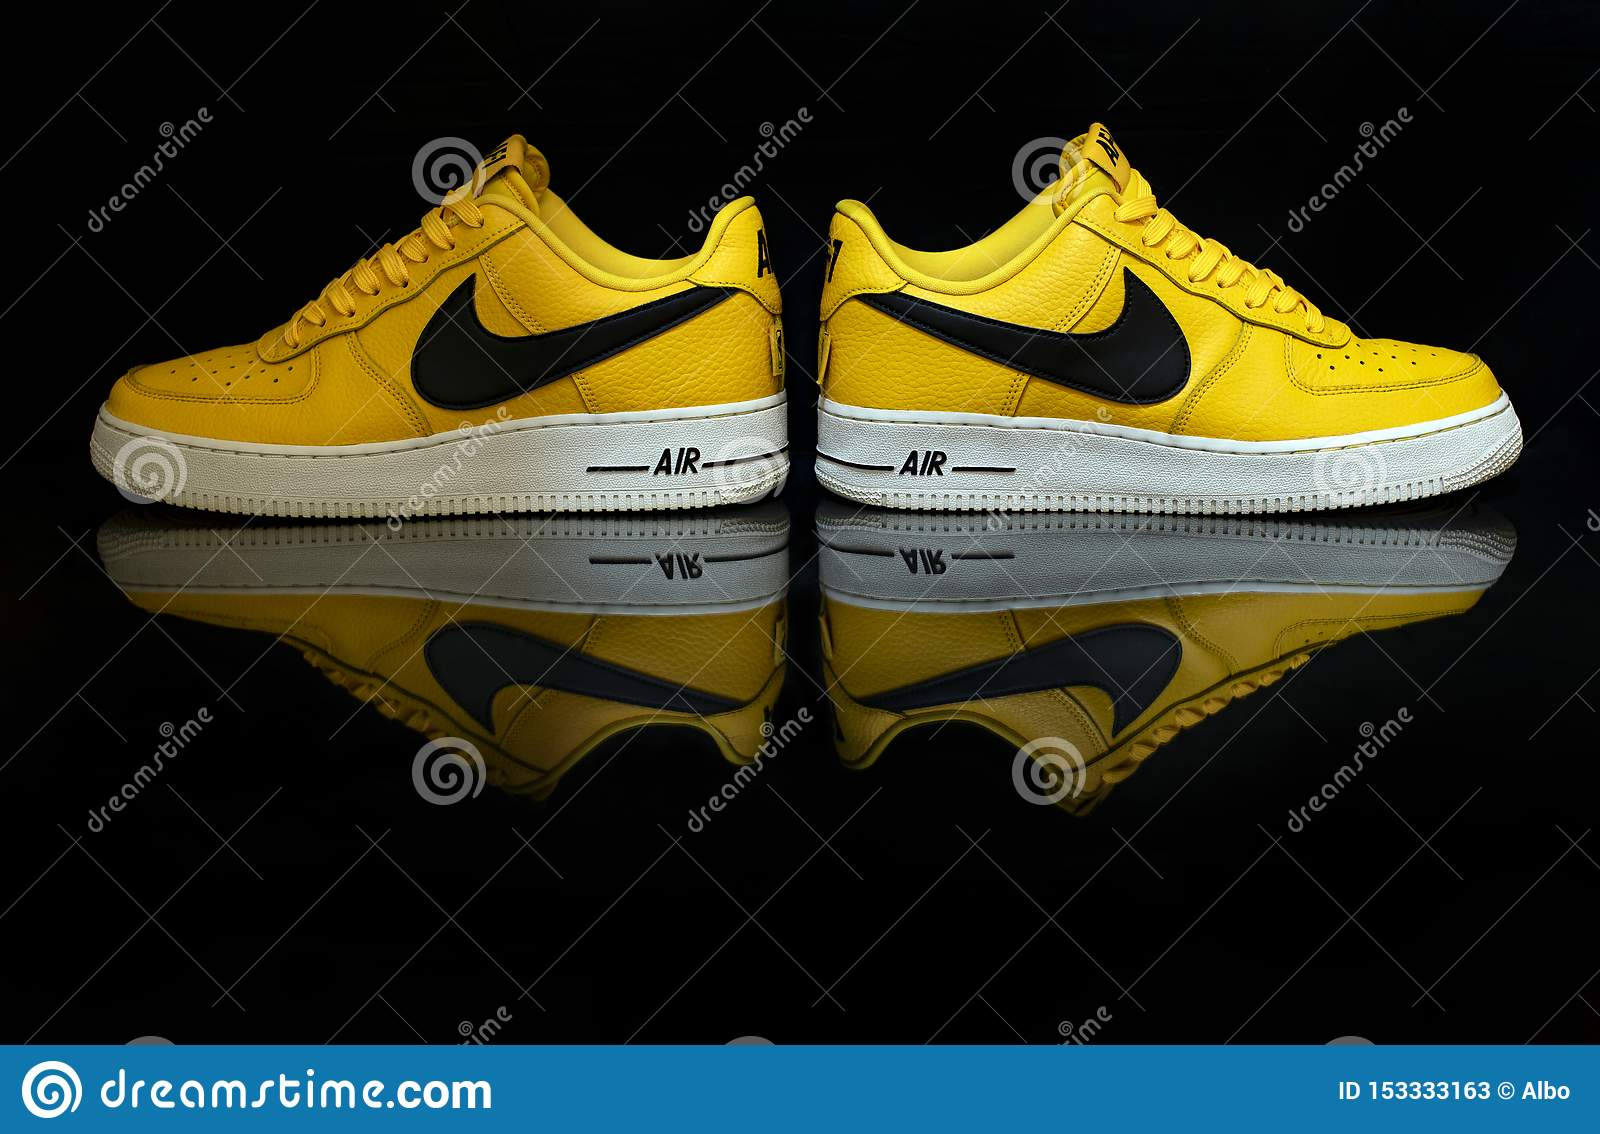 zapatillas nike air force amarillas